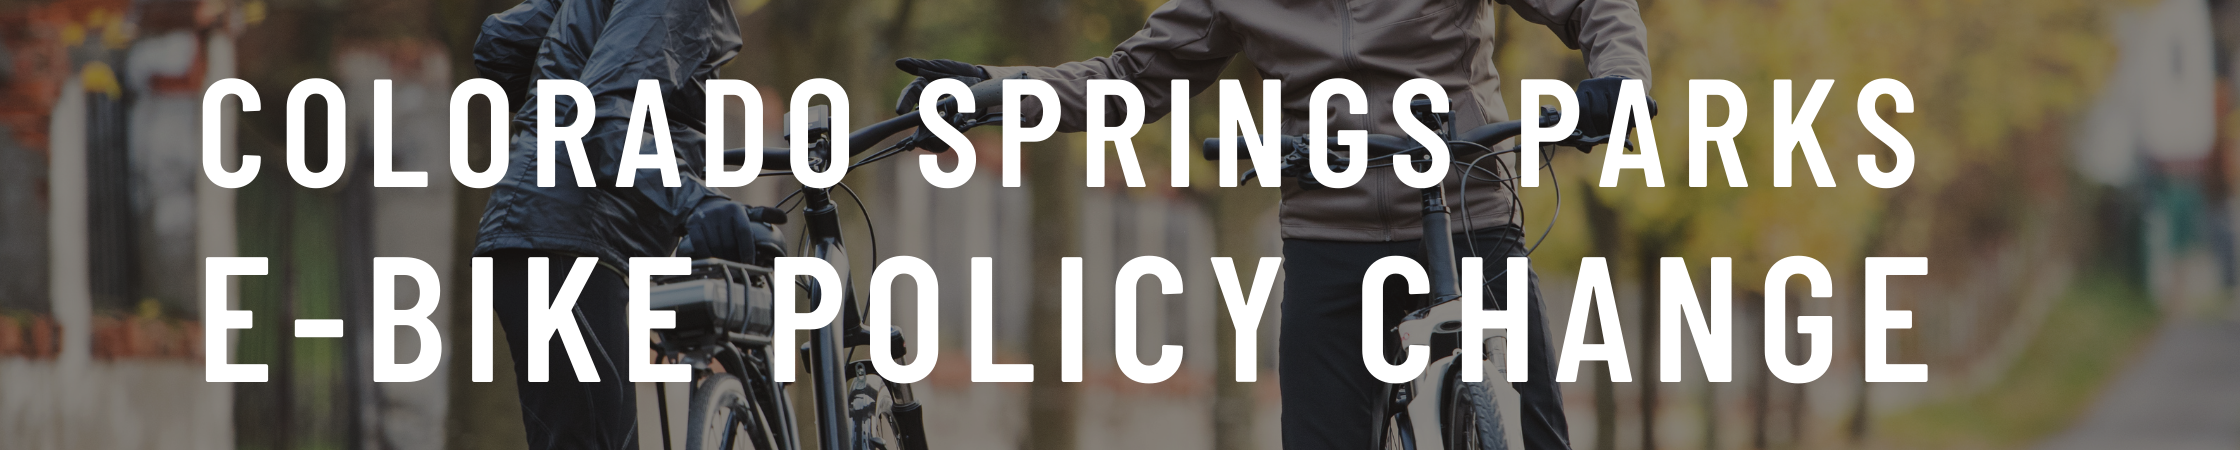 Colorado Springs Parks EBike Policy Change